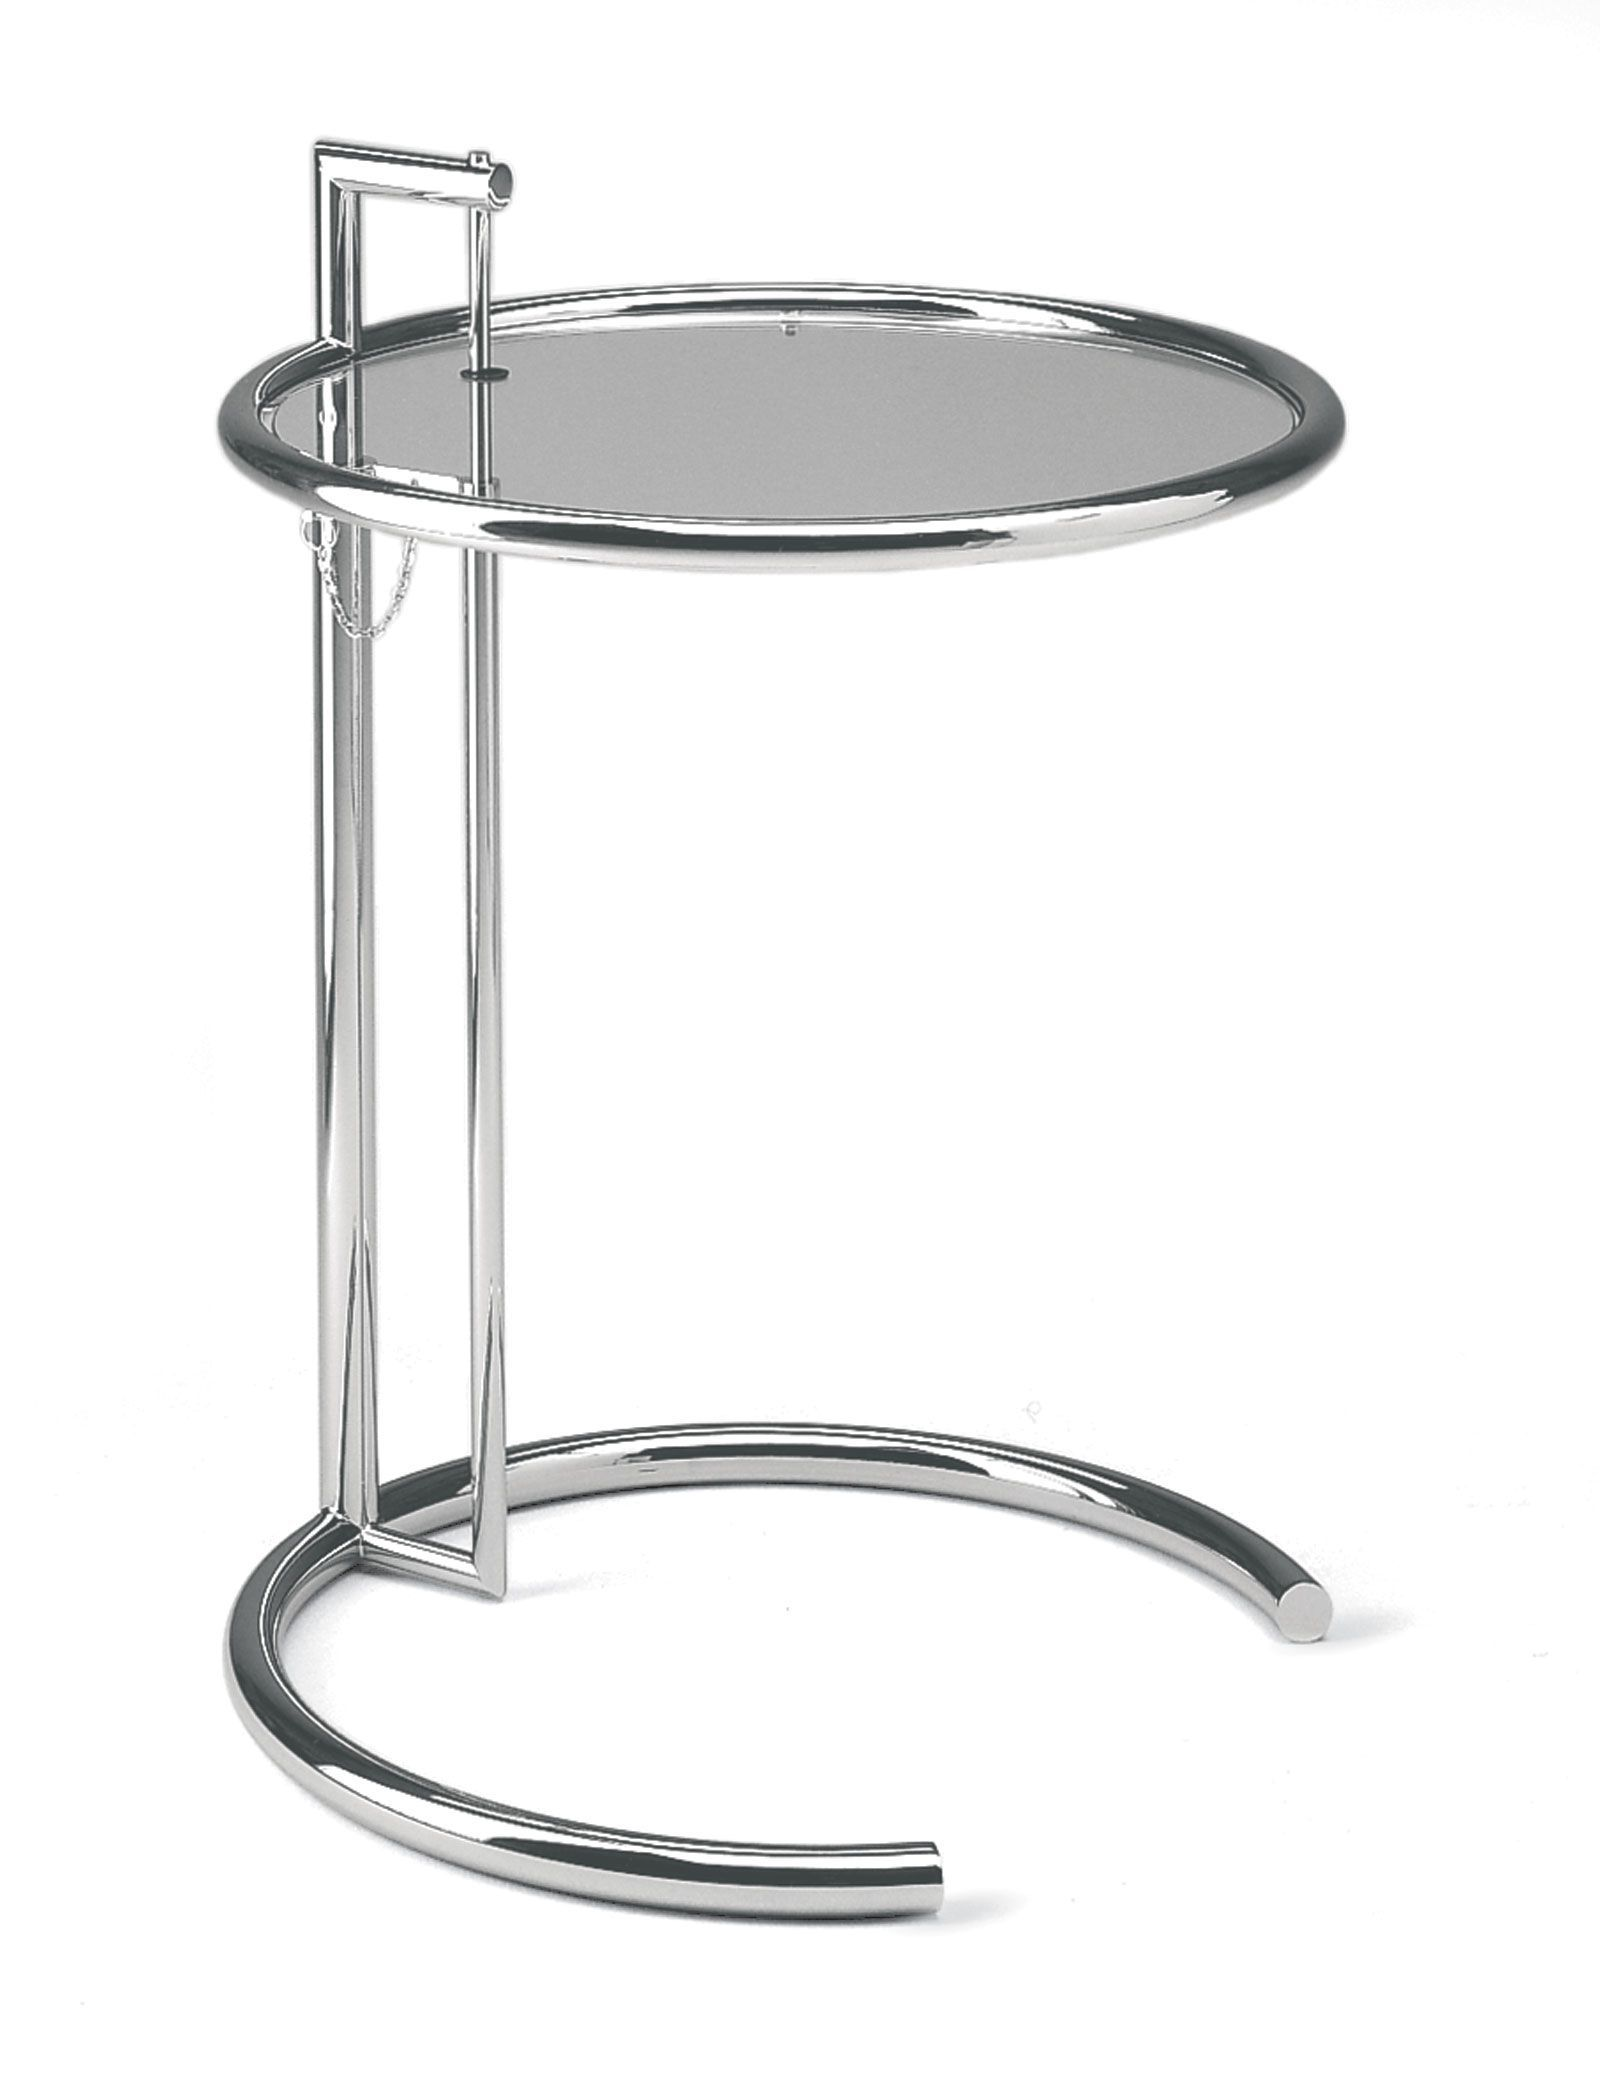 Eileen Gray Tisch Eileen Gray Adjustable Height Cocktail Table With Tubular Polished